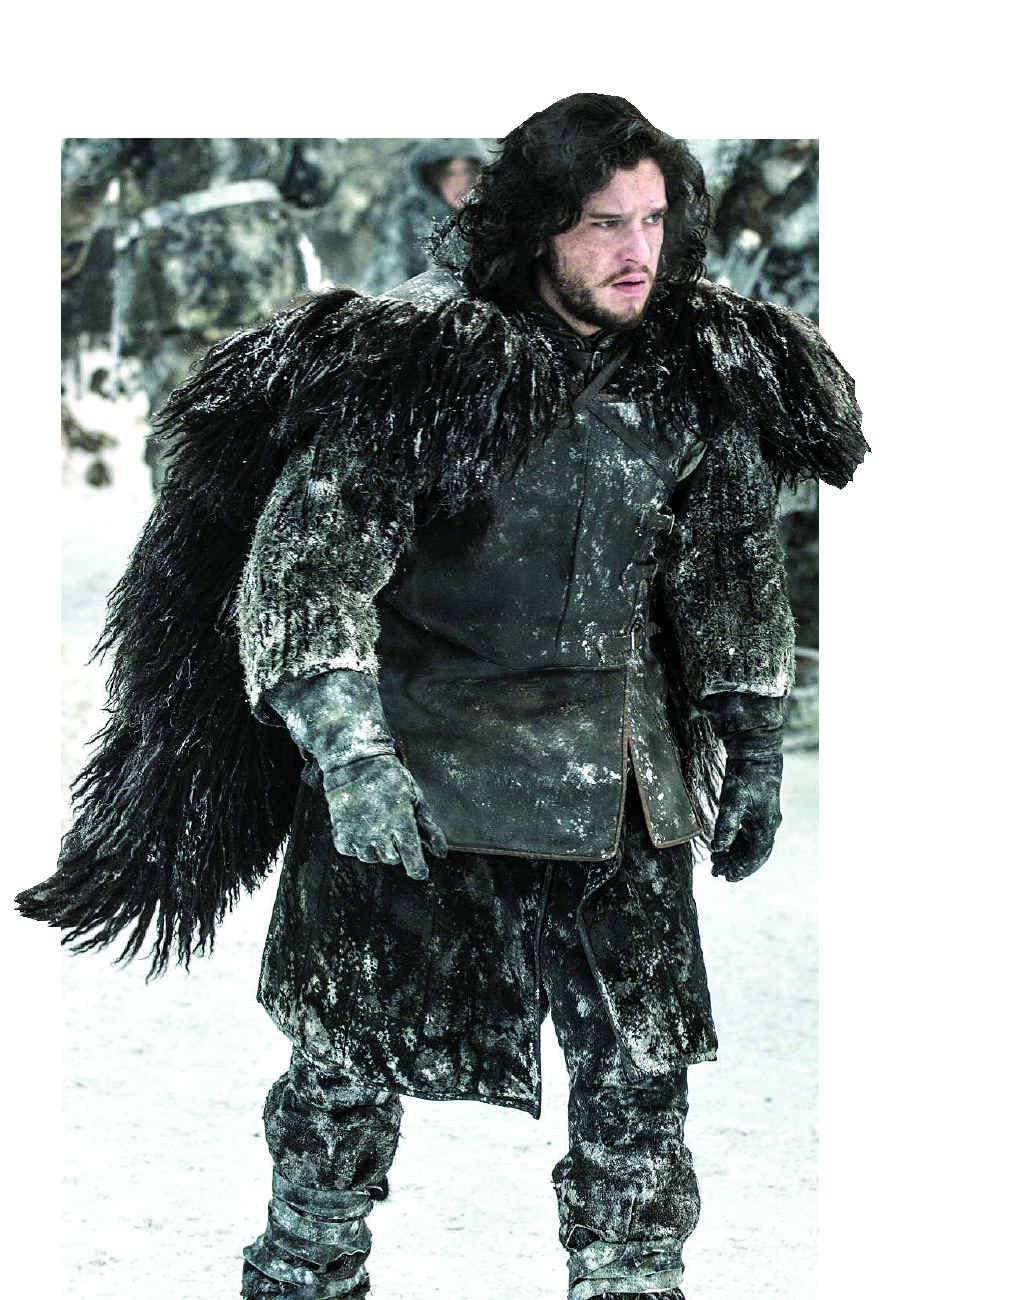 HE KNOWS SOMETHING: Jon Snow from season 3 of 'Game of Thrones'.